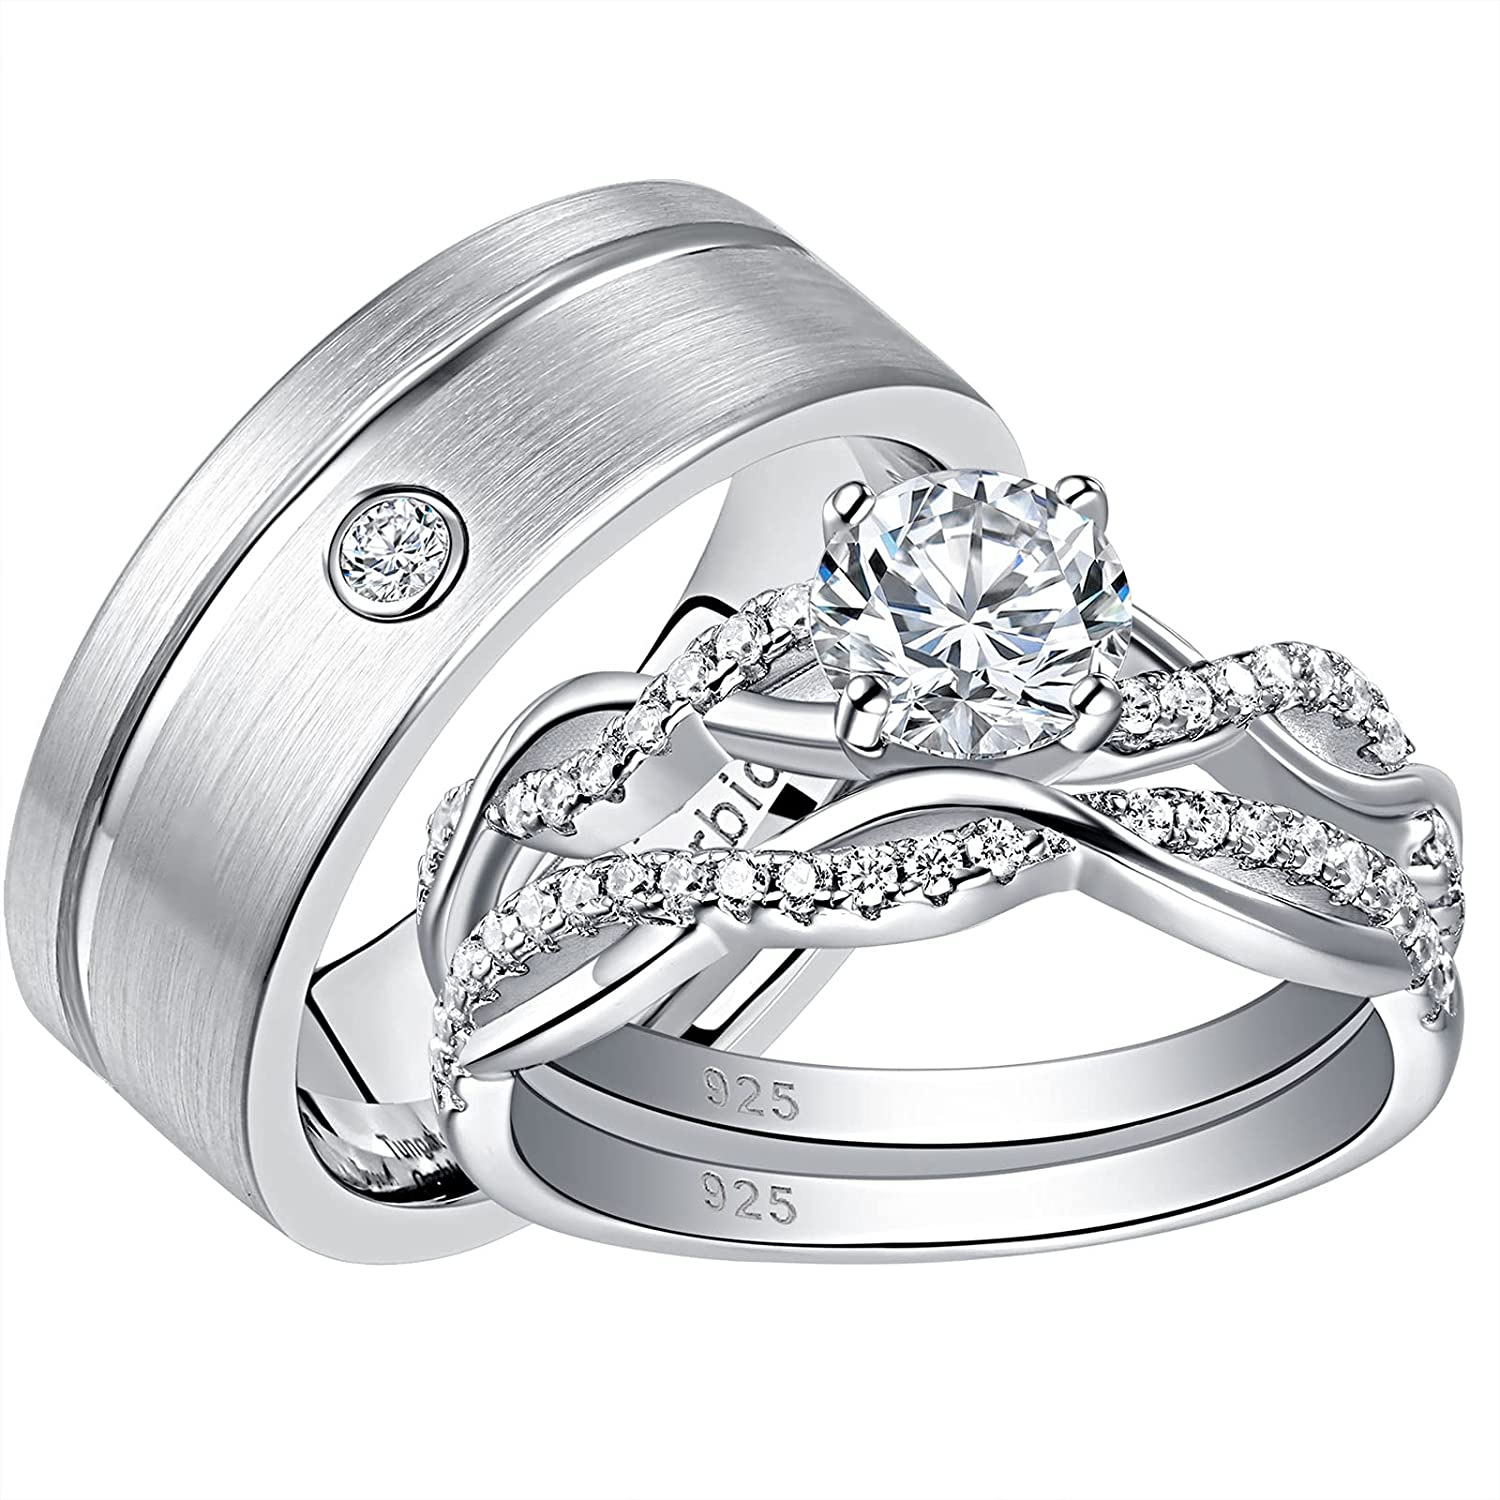 SHELOVES Wedding Rings Set His Hers Couple All items in the store Women Men Cz Round Cheap mail order specialty store Tu